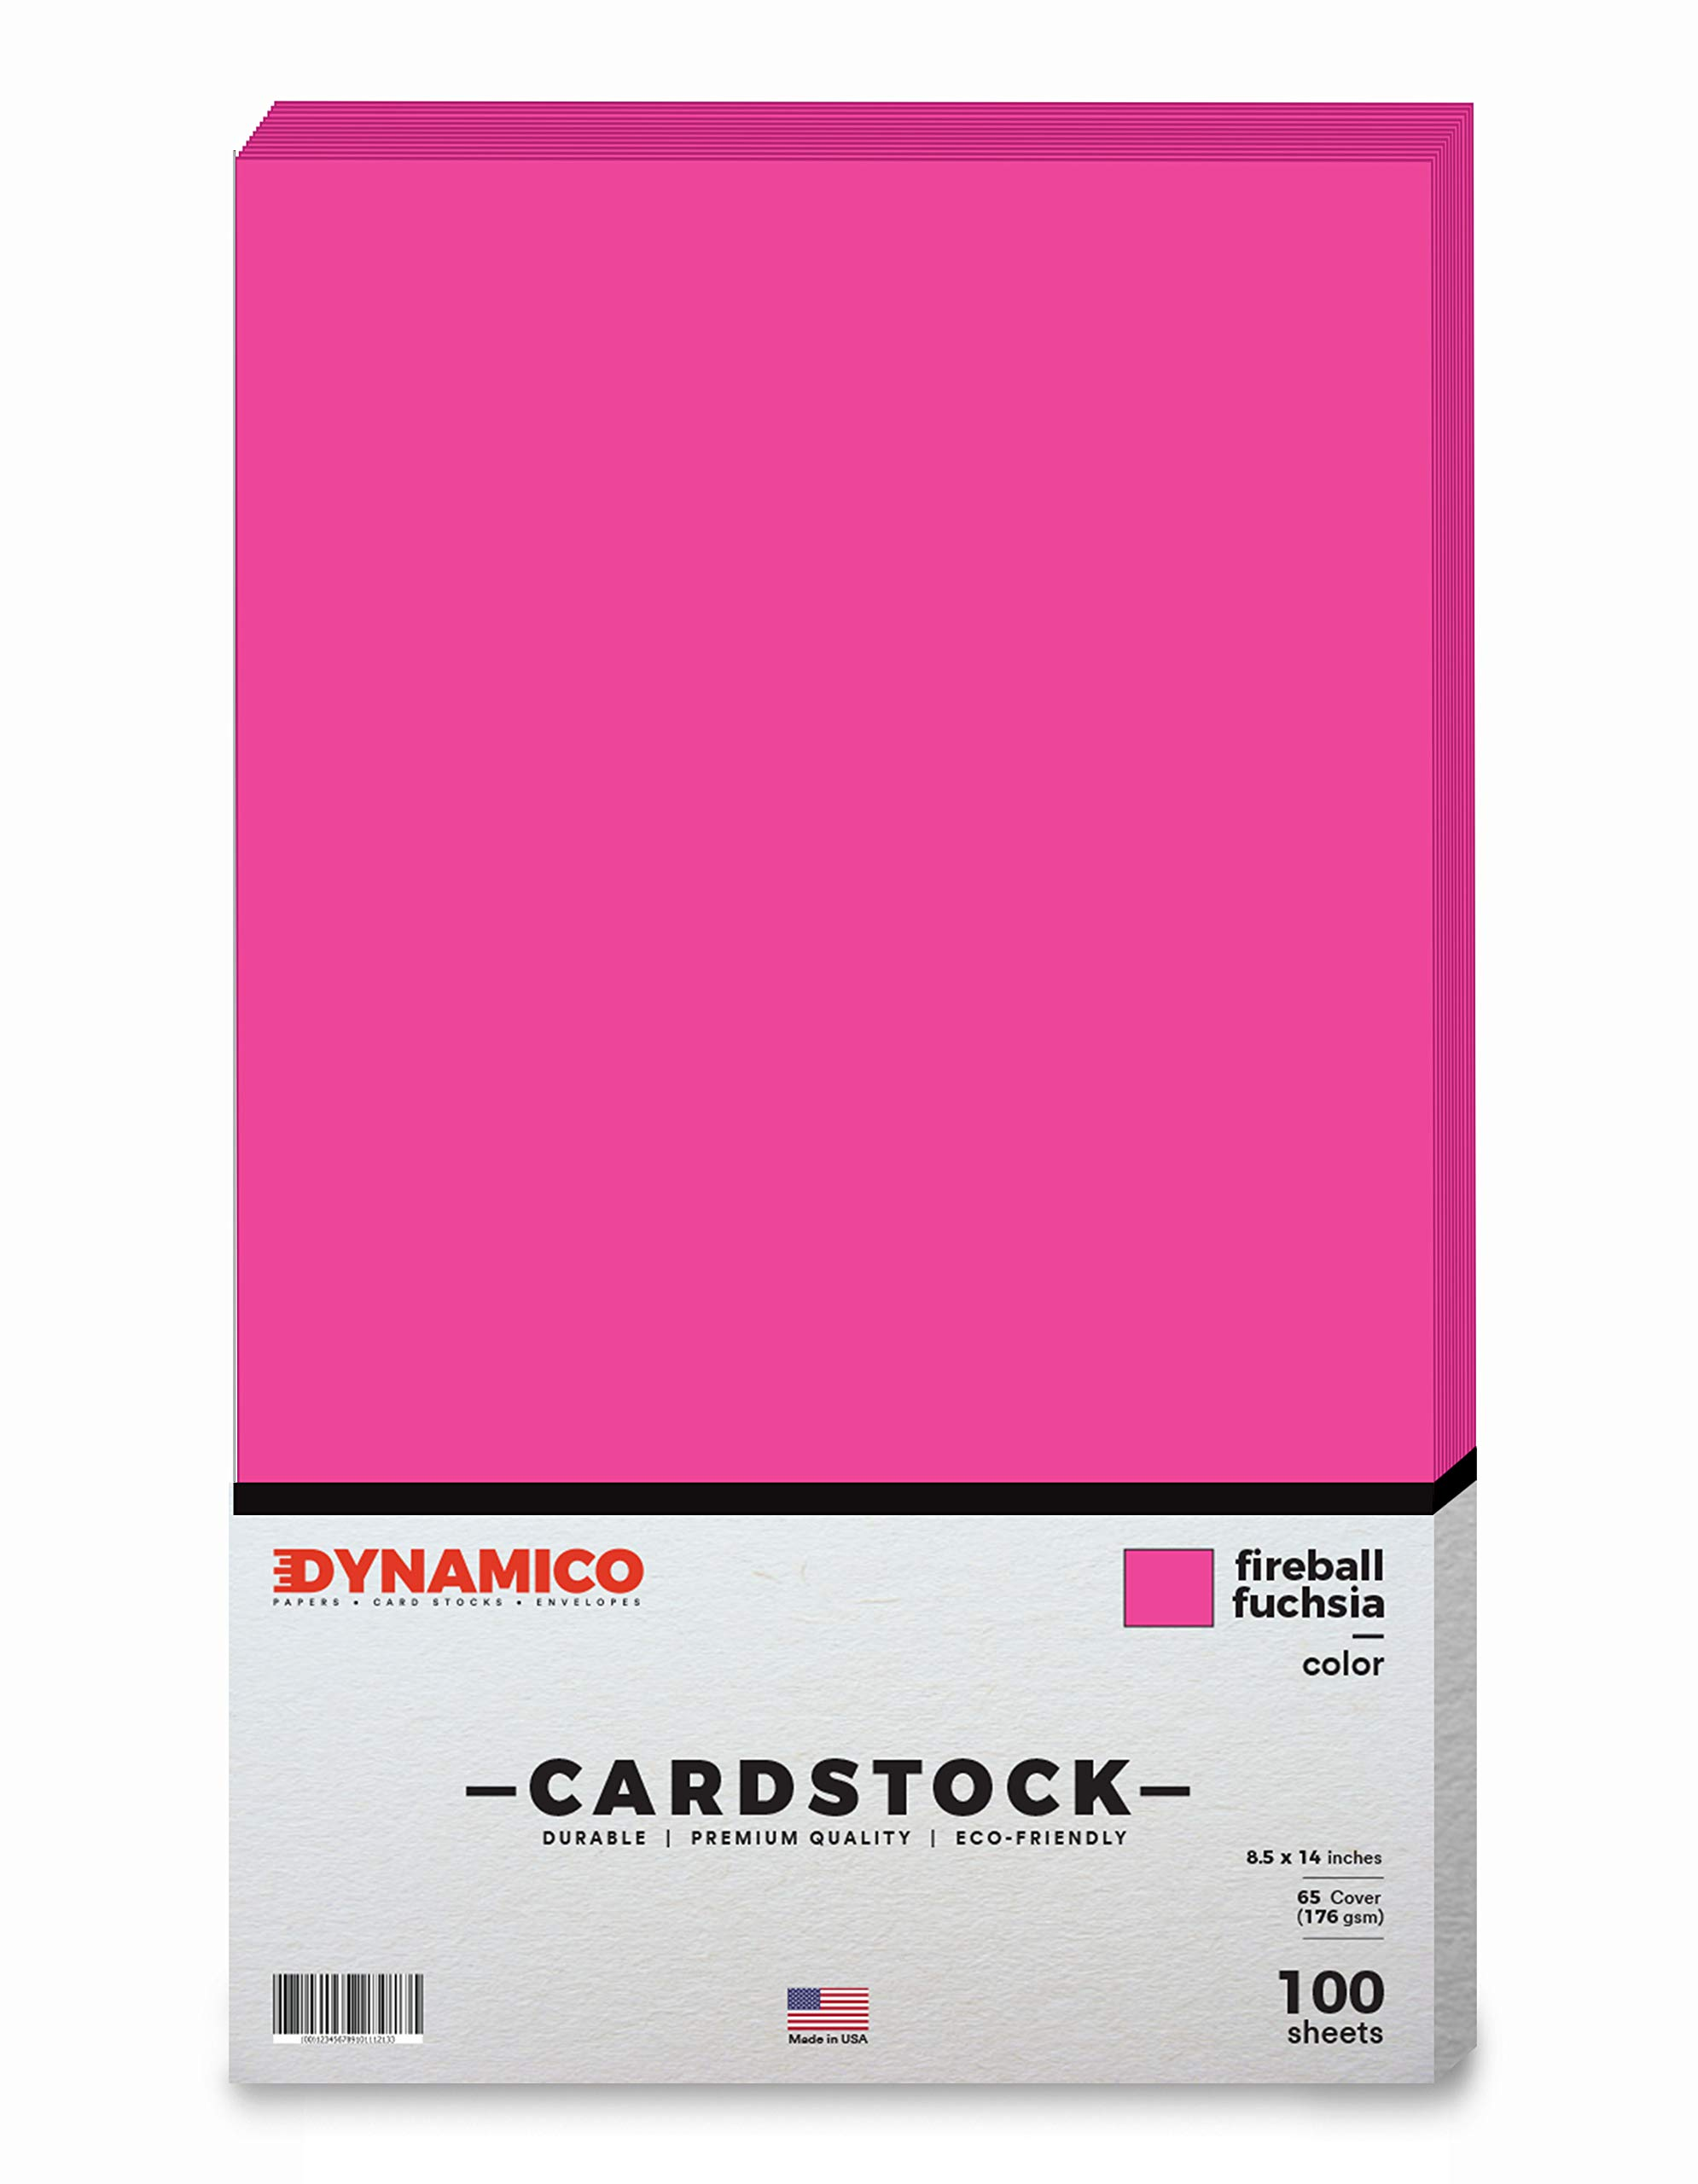 Fireball Fuchsia 8.5 x 14'' Cardstock Paper - Legal/Menu Size - for Cards, and Stationery Printing | Medium weight 65 LB (175 gsm) Cover Card Stock | 100 Sheets Per Pack